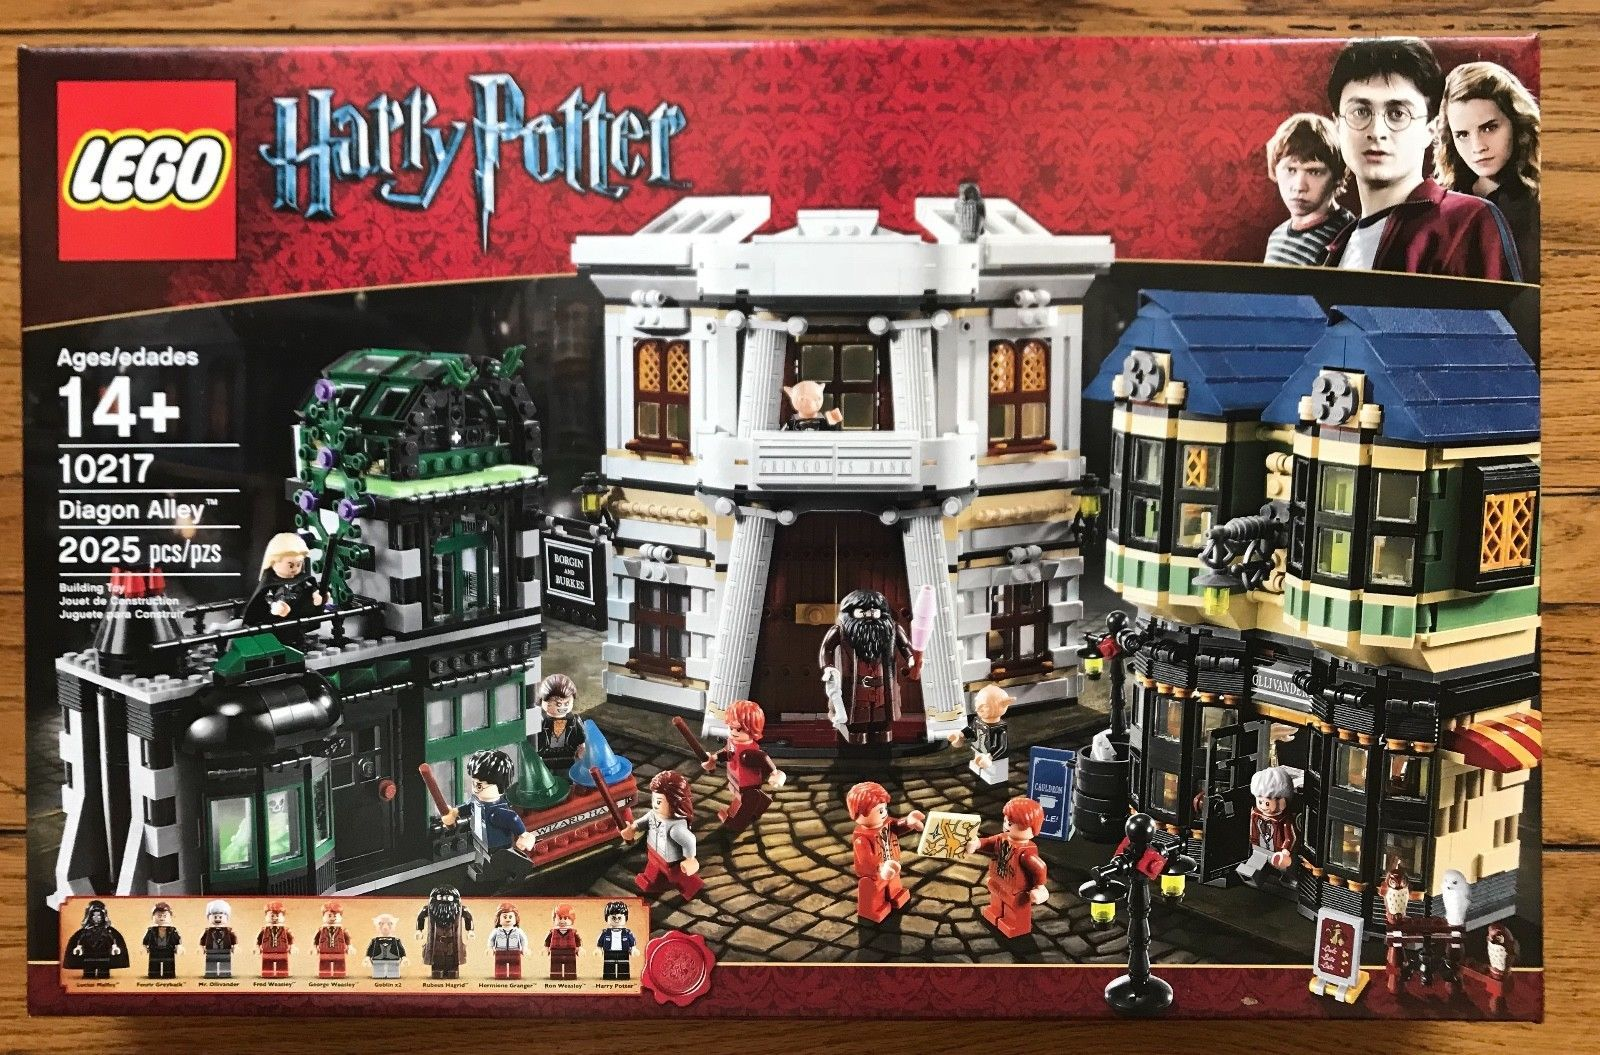 Brand New Lego Harry Potter Diagon Alley 10217 Lego Harry